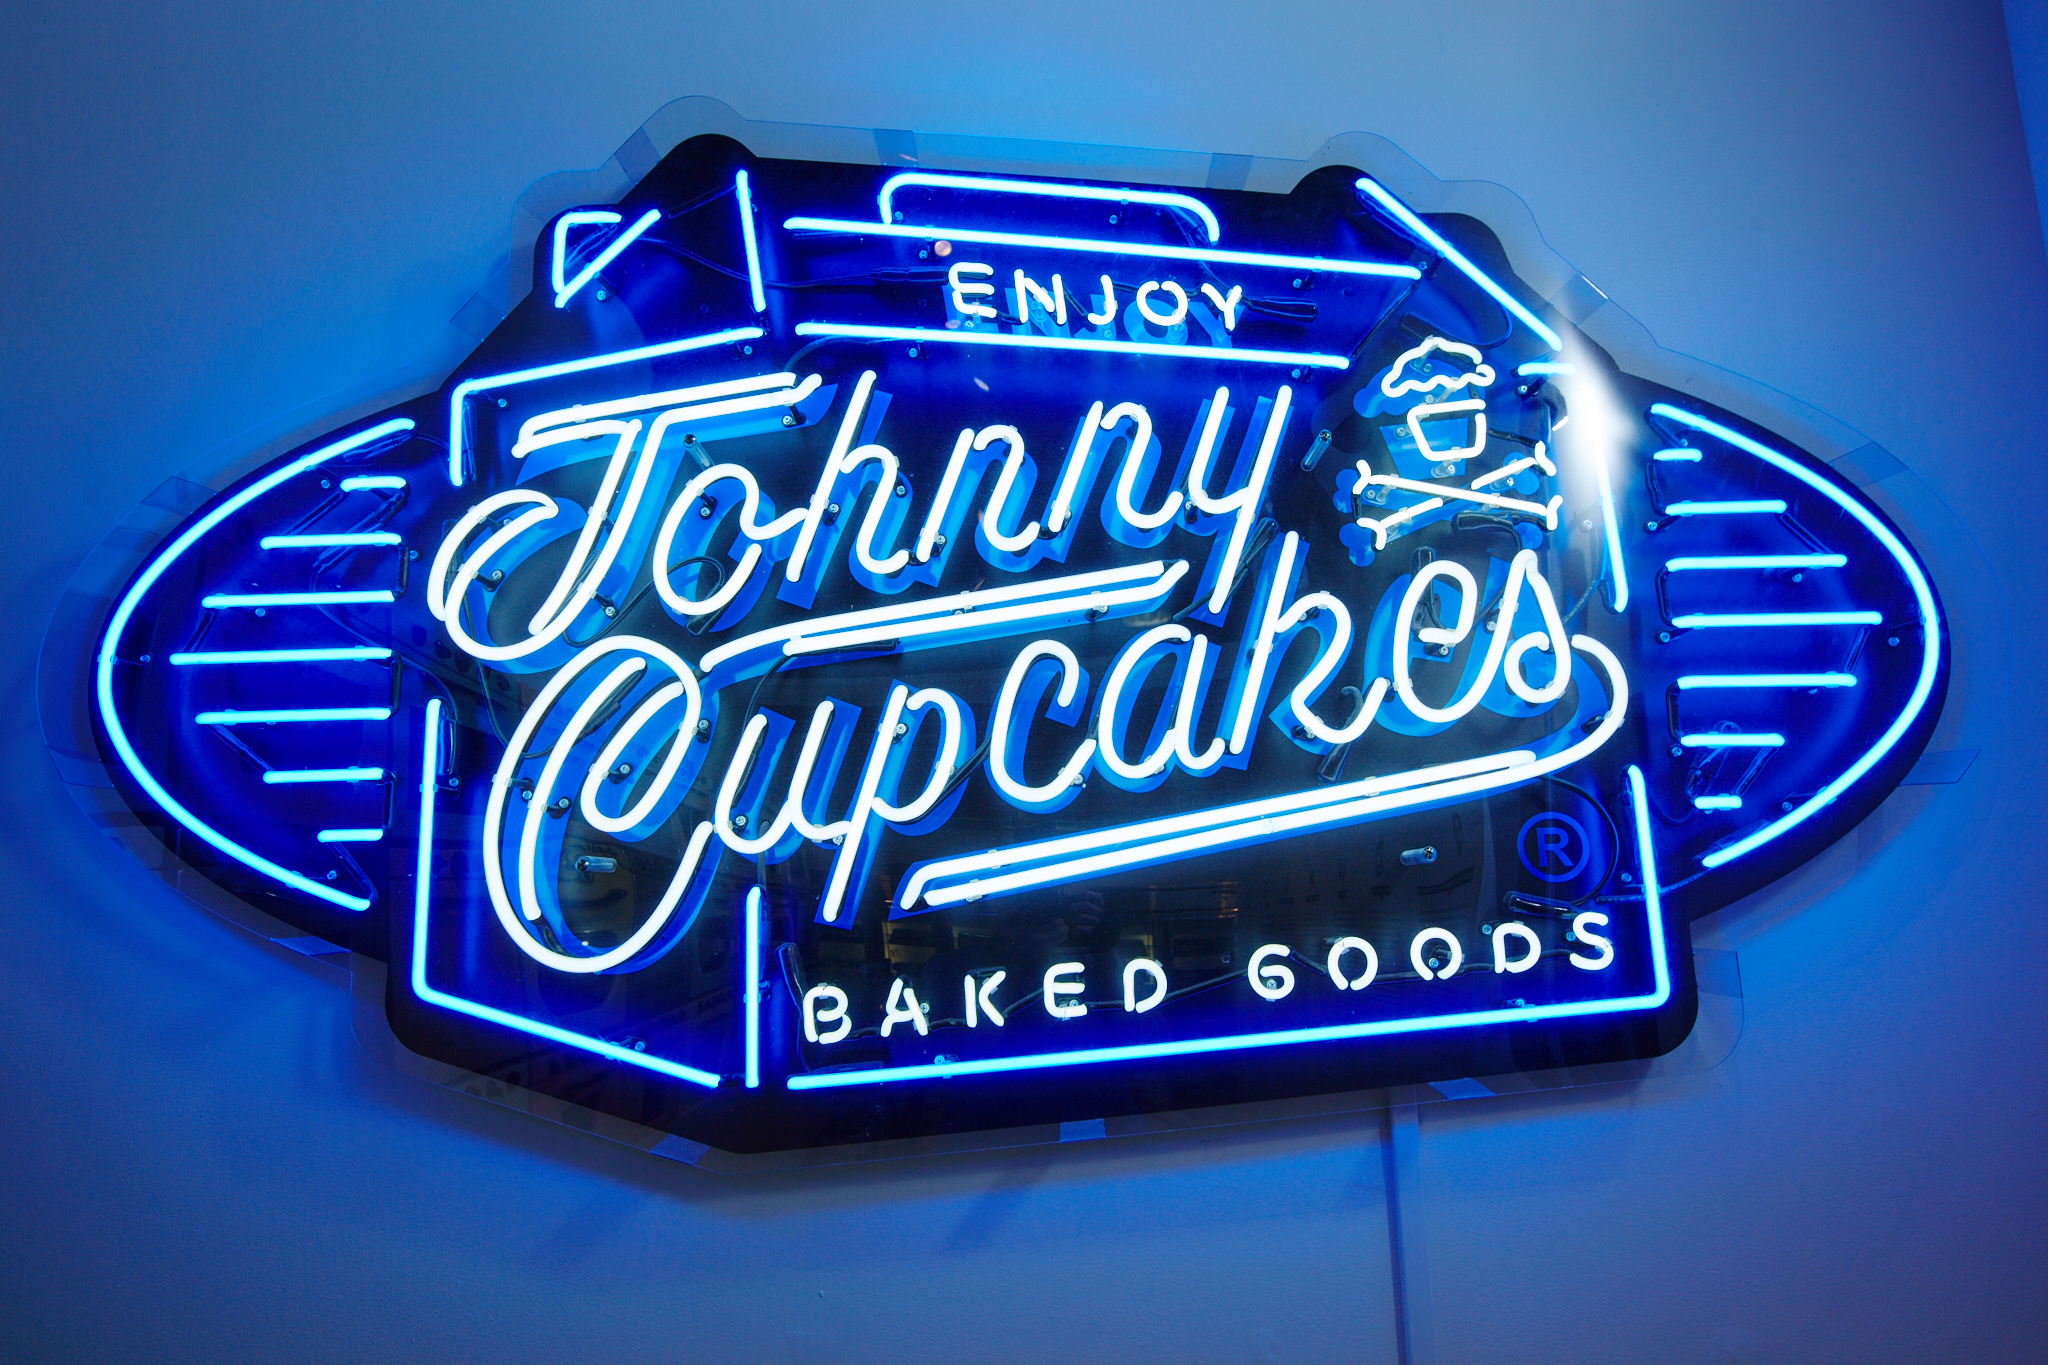 https://www.designercon.com/wp-content/uploads/2017/09/Johnny-Cupcakes-Boston-279-Newbury-Street-neon-sign.jpg